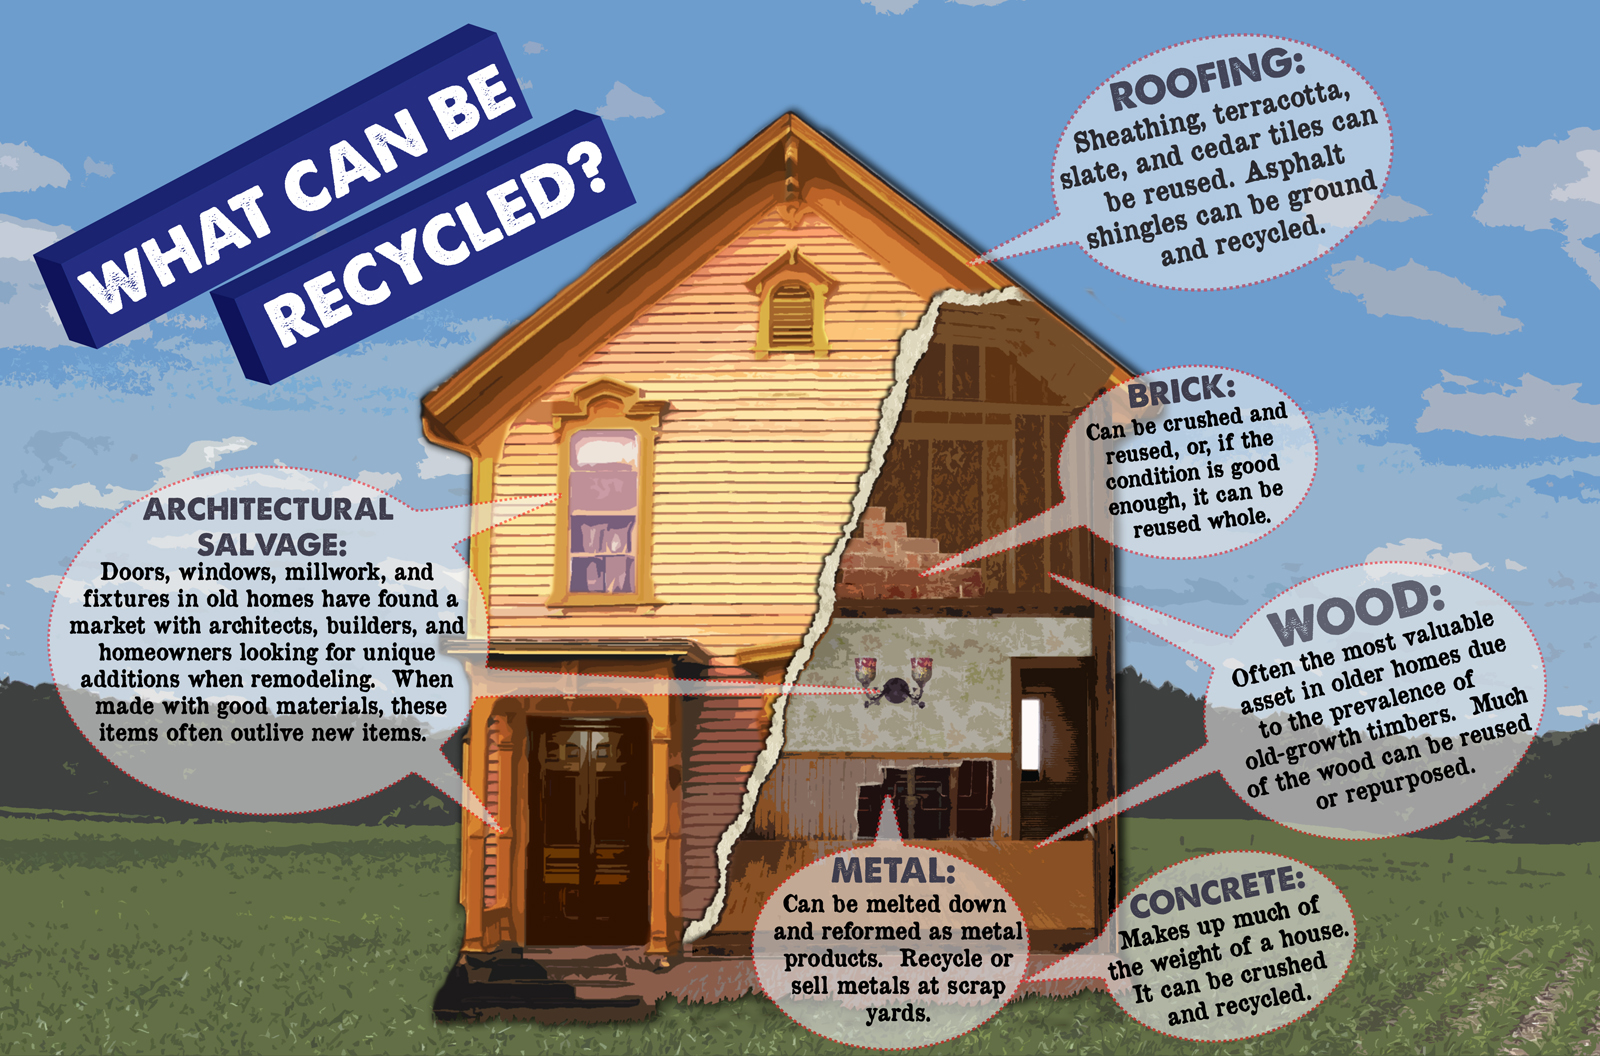 What parts of a house can be recycled?